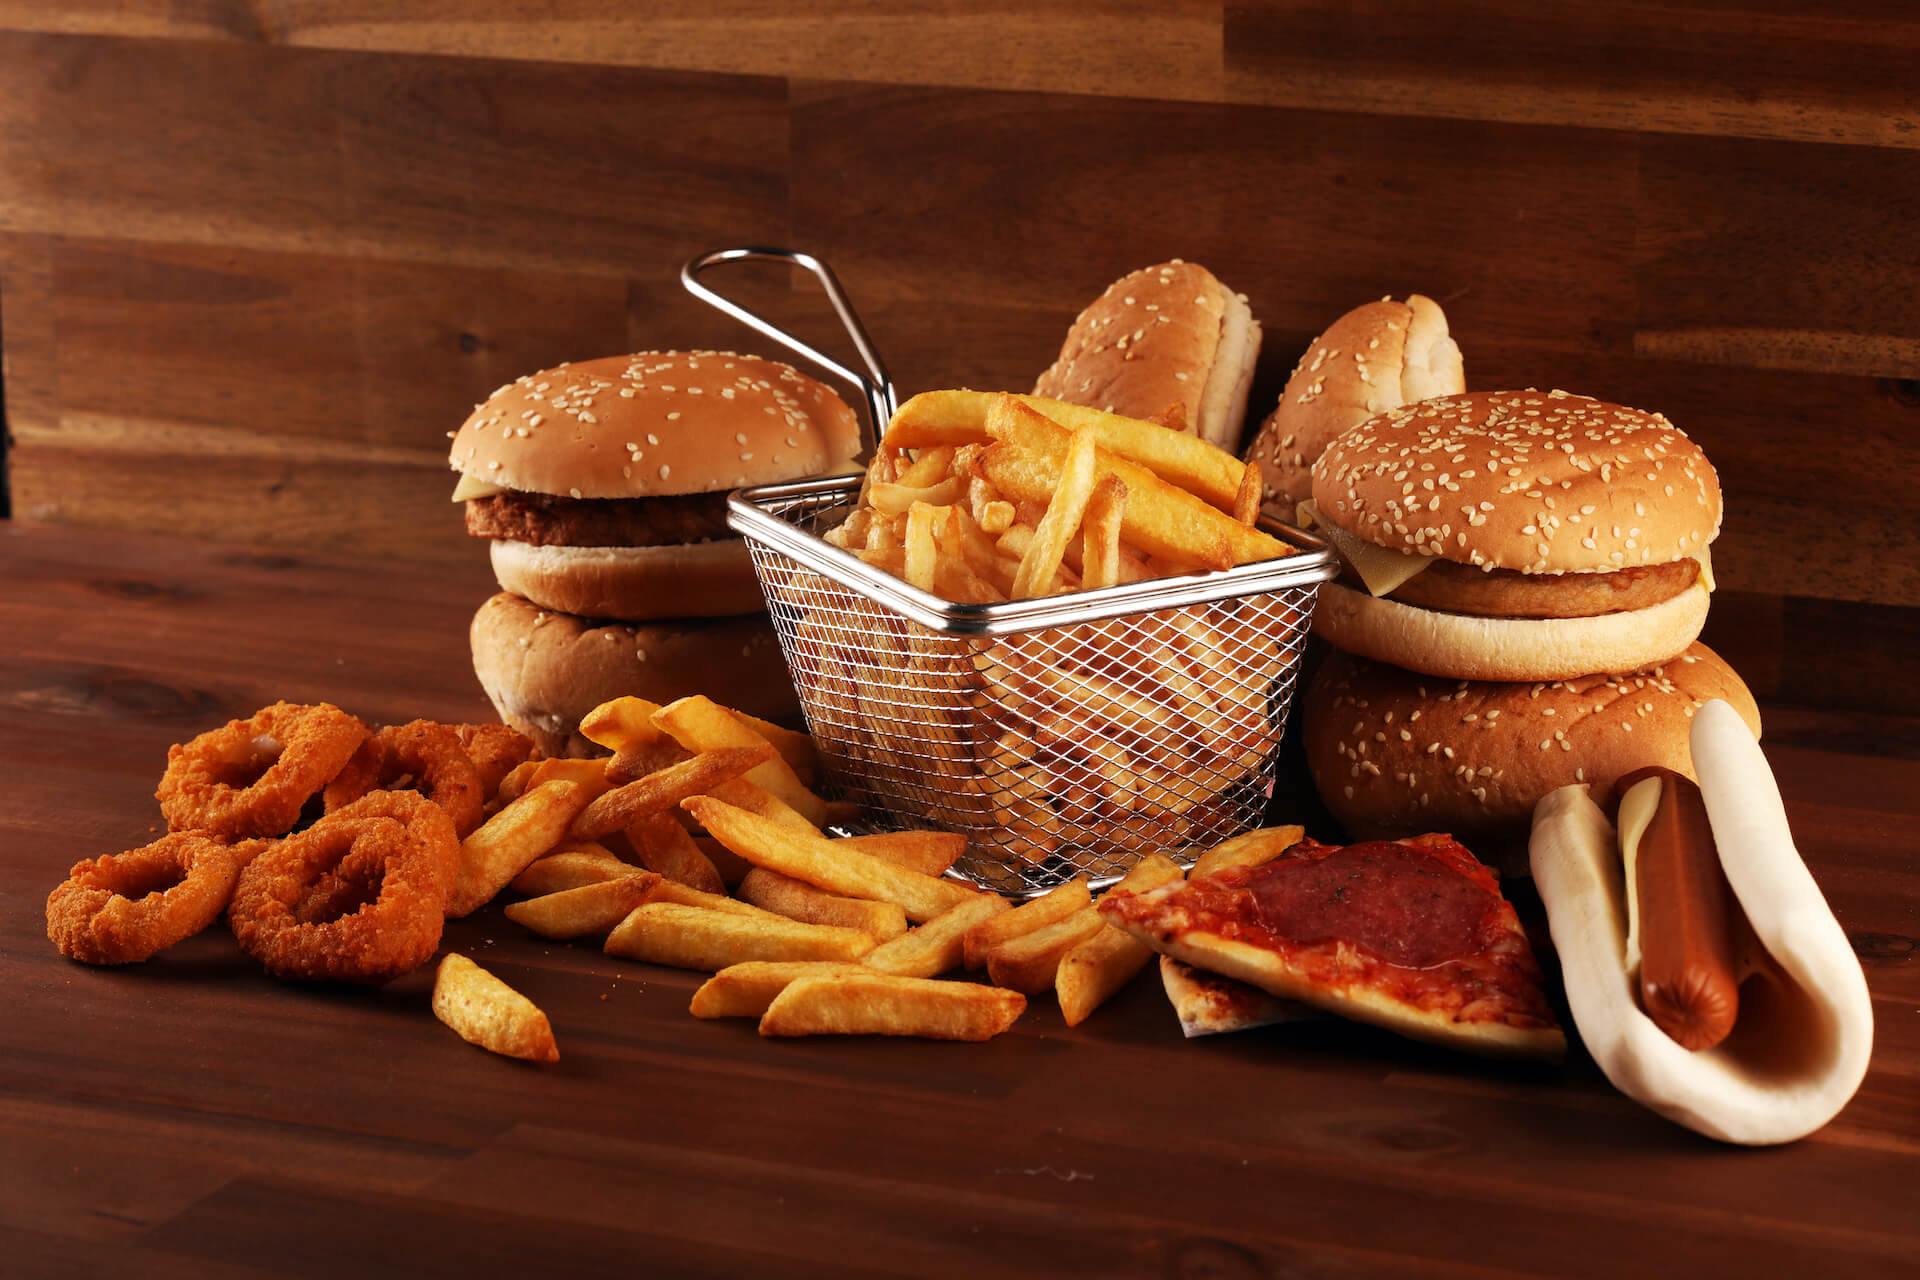 junk food; burgers, onion rings, french fries, pizza